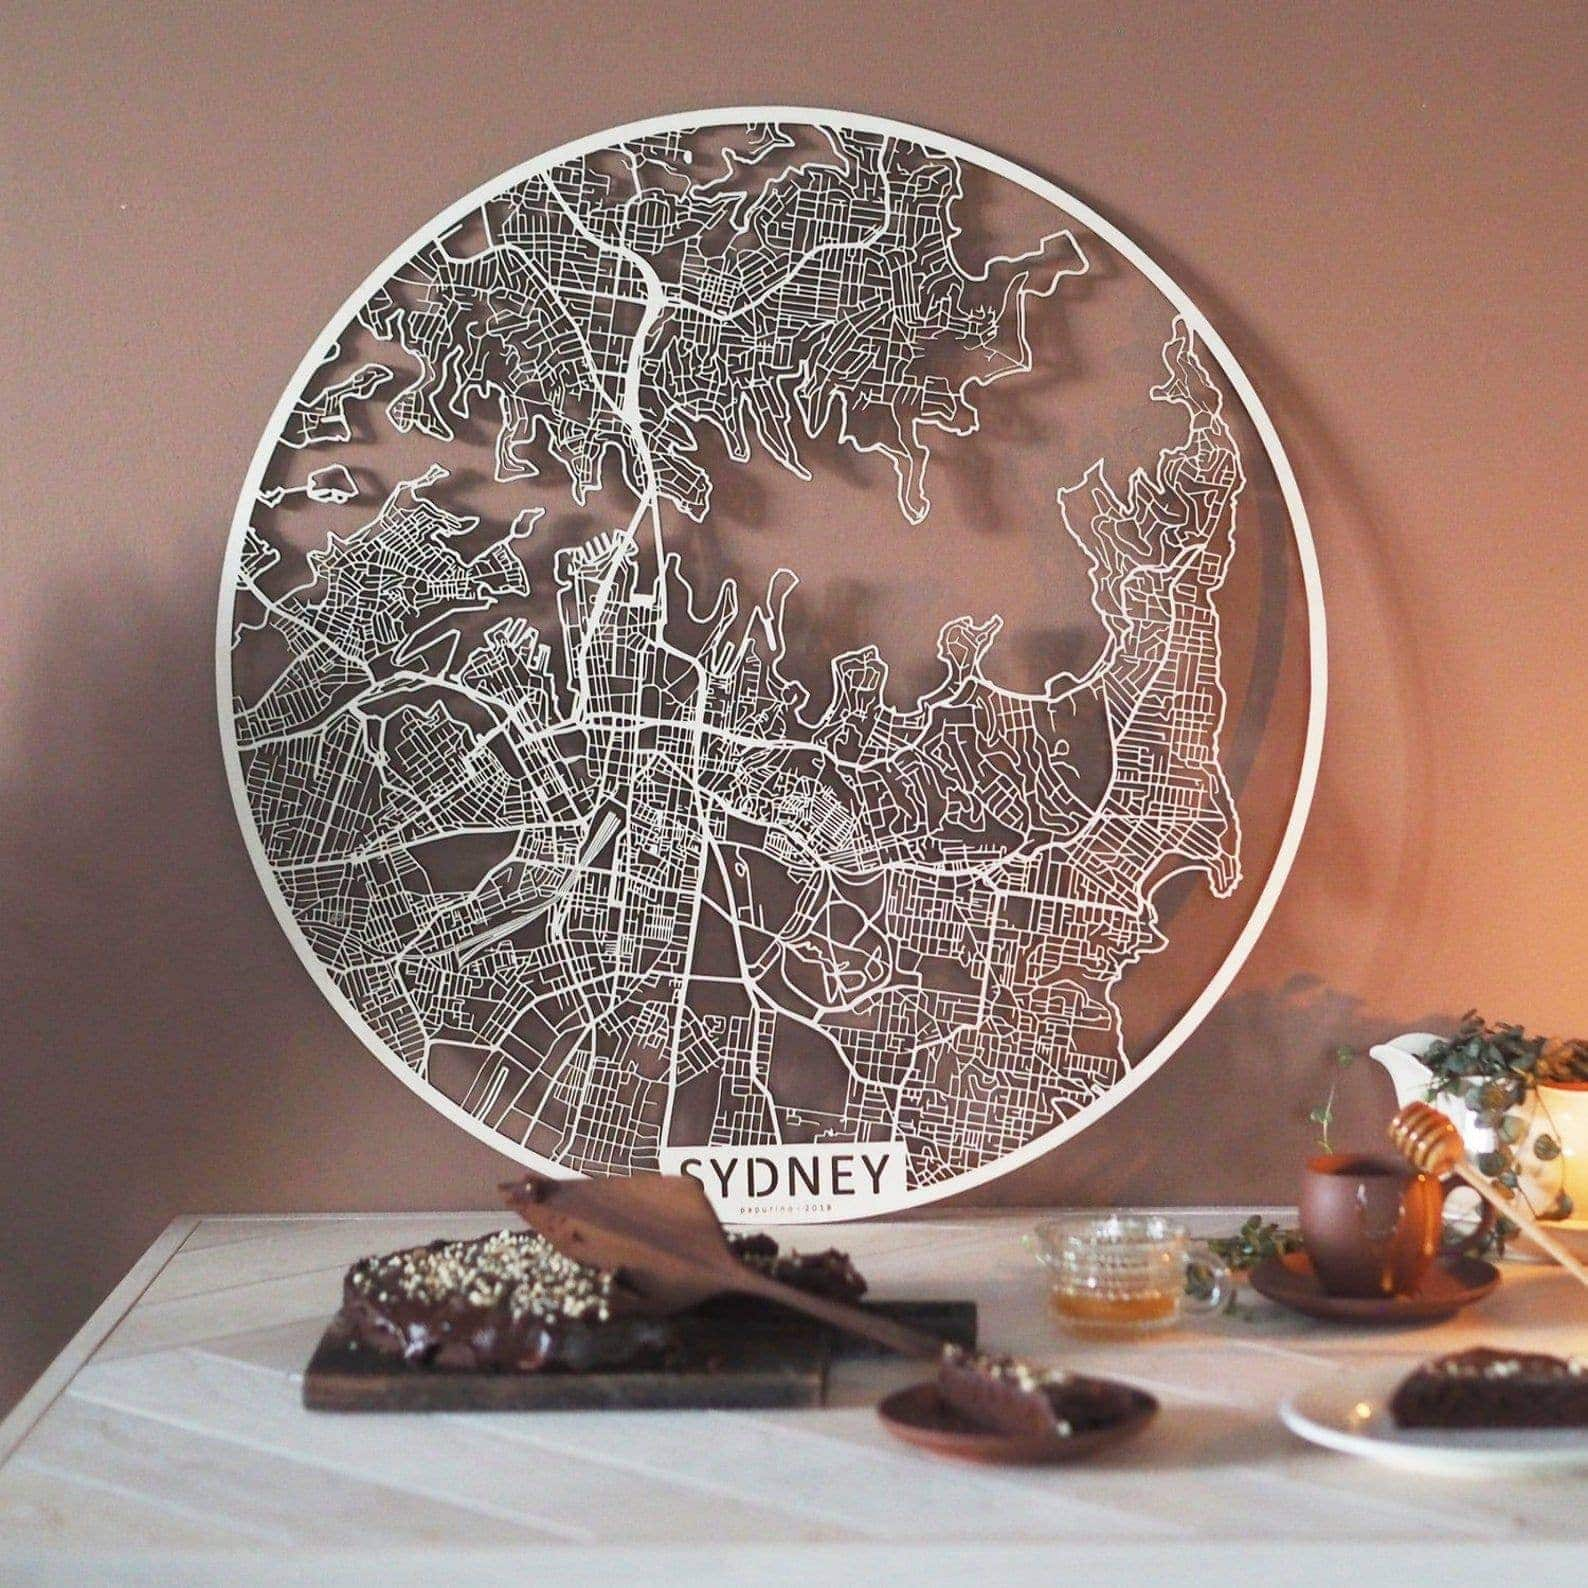 wooden-map-of-sydney